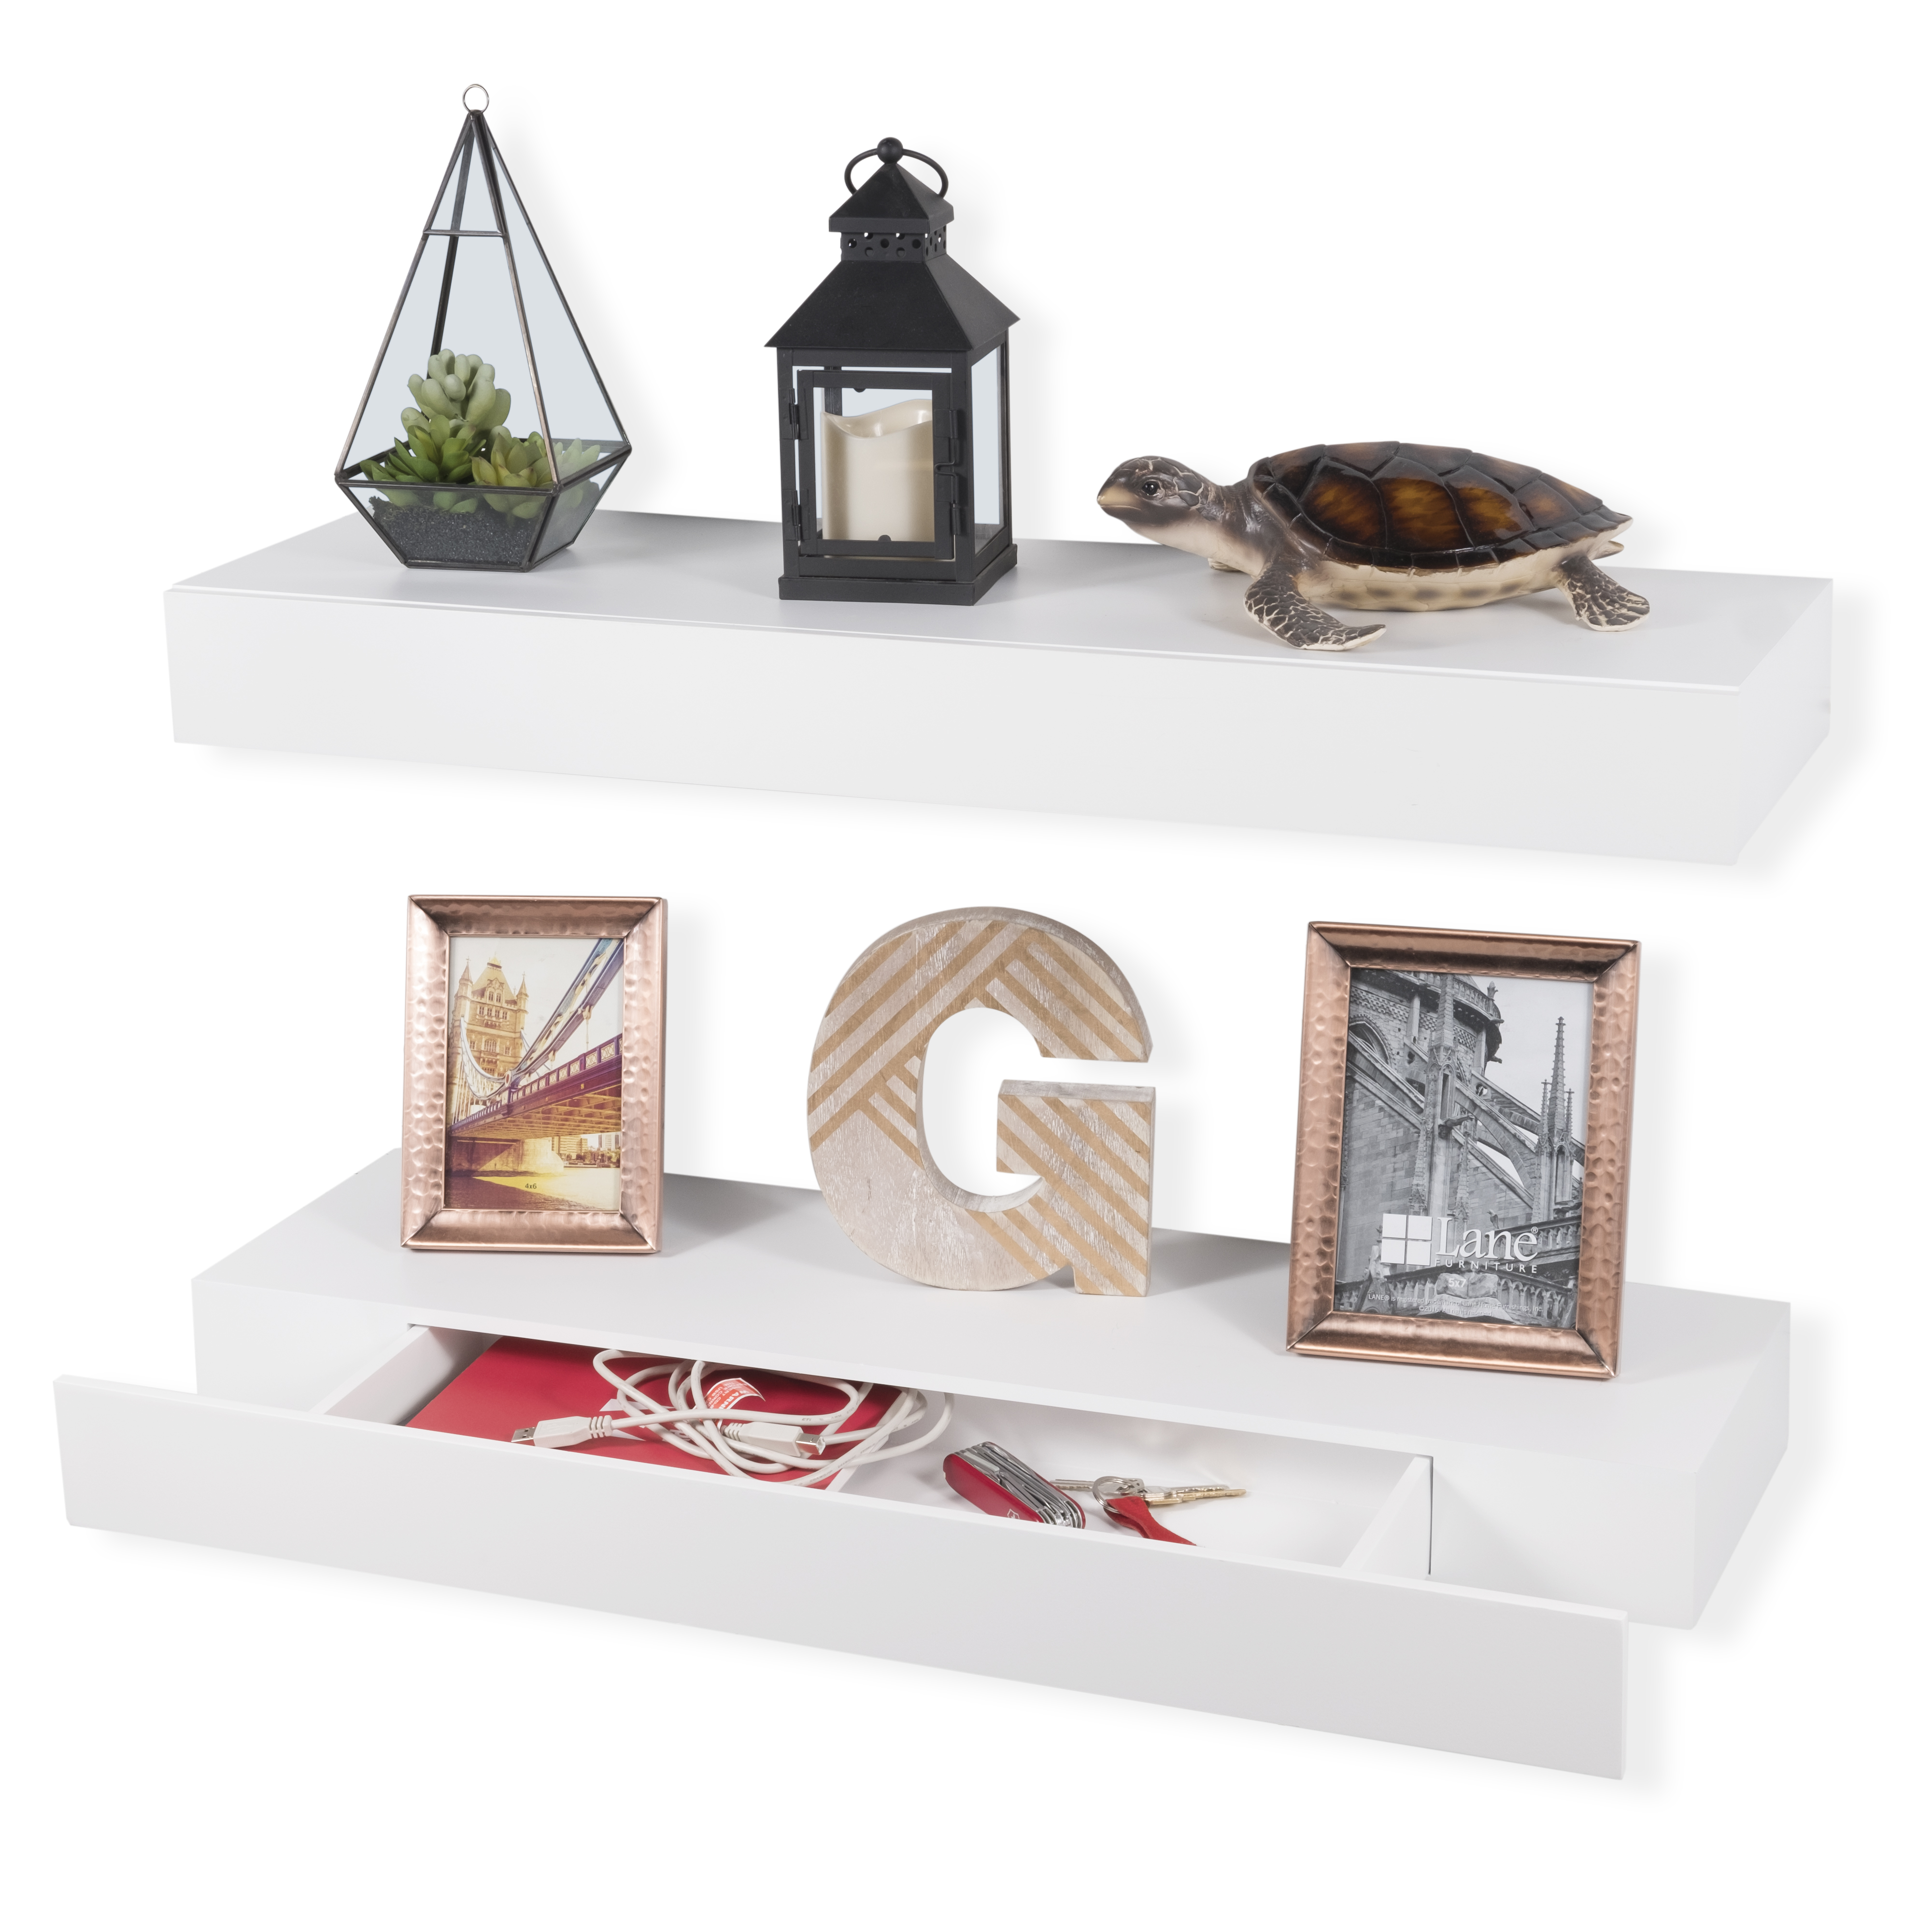 Floating Display Shelf Wall Mount with Pull Out Drawer by Wallniture Perfect for Living Room Media Storage Set of 2 White